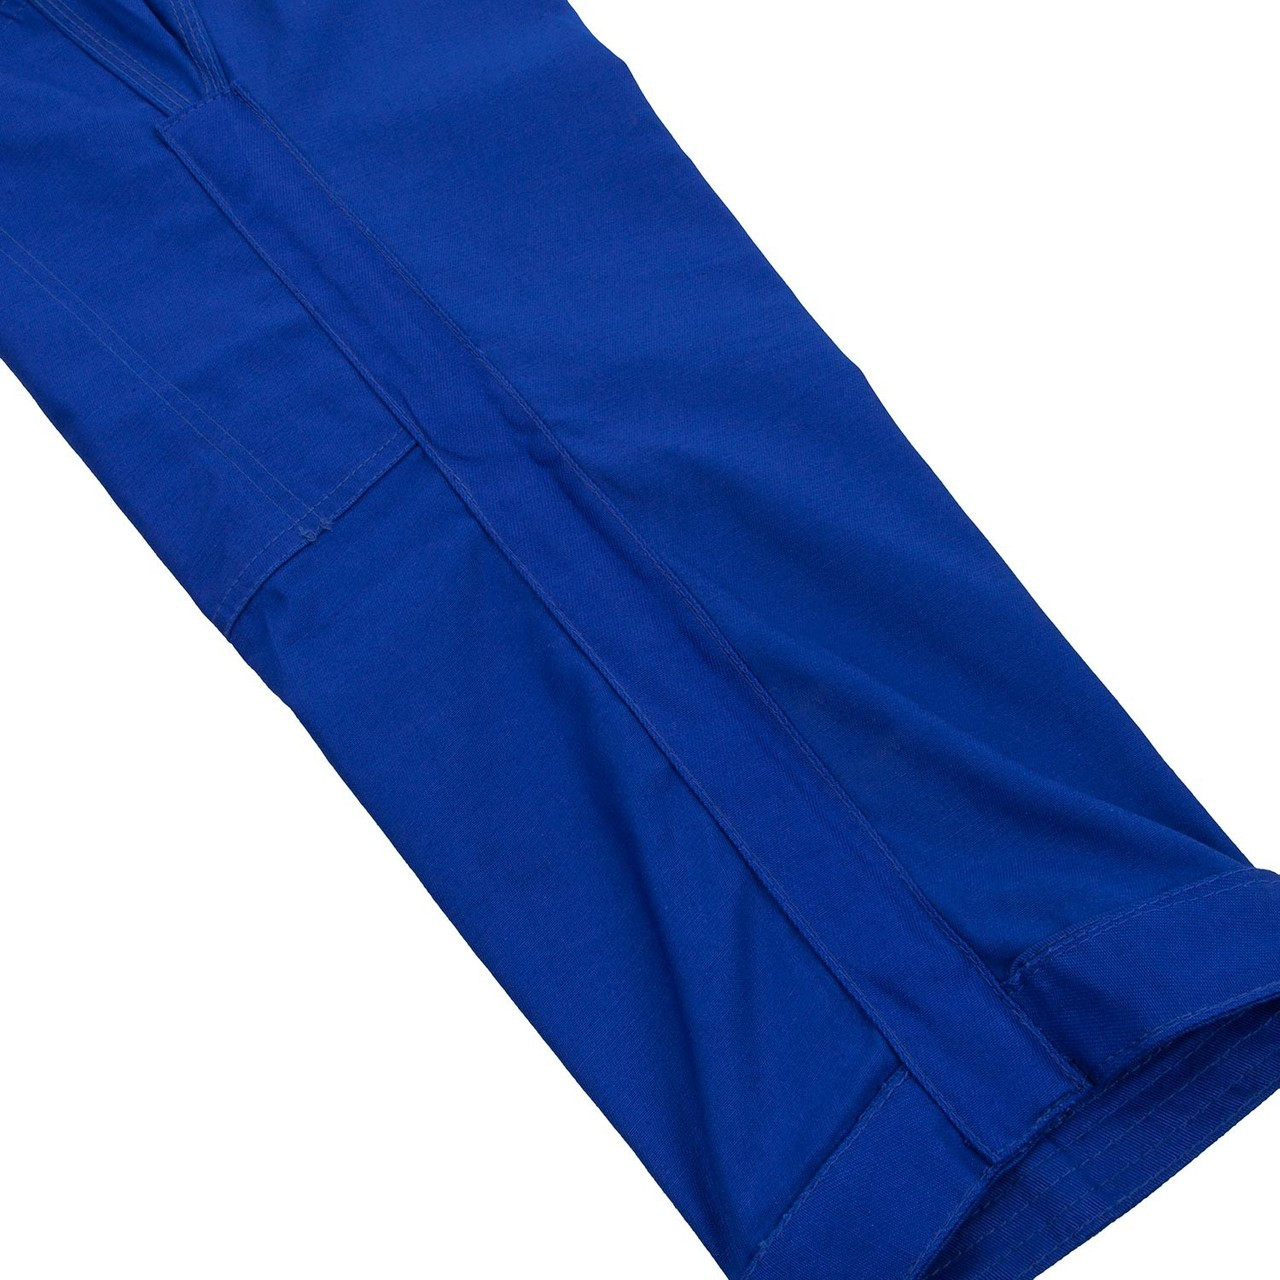 inside pants of the Venum Contender 2.0 Blue BJJ GI available at www.thejiujitsushop.com  Enjoy Free Shipping from The Jiu Jitsu Shop today!